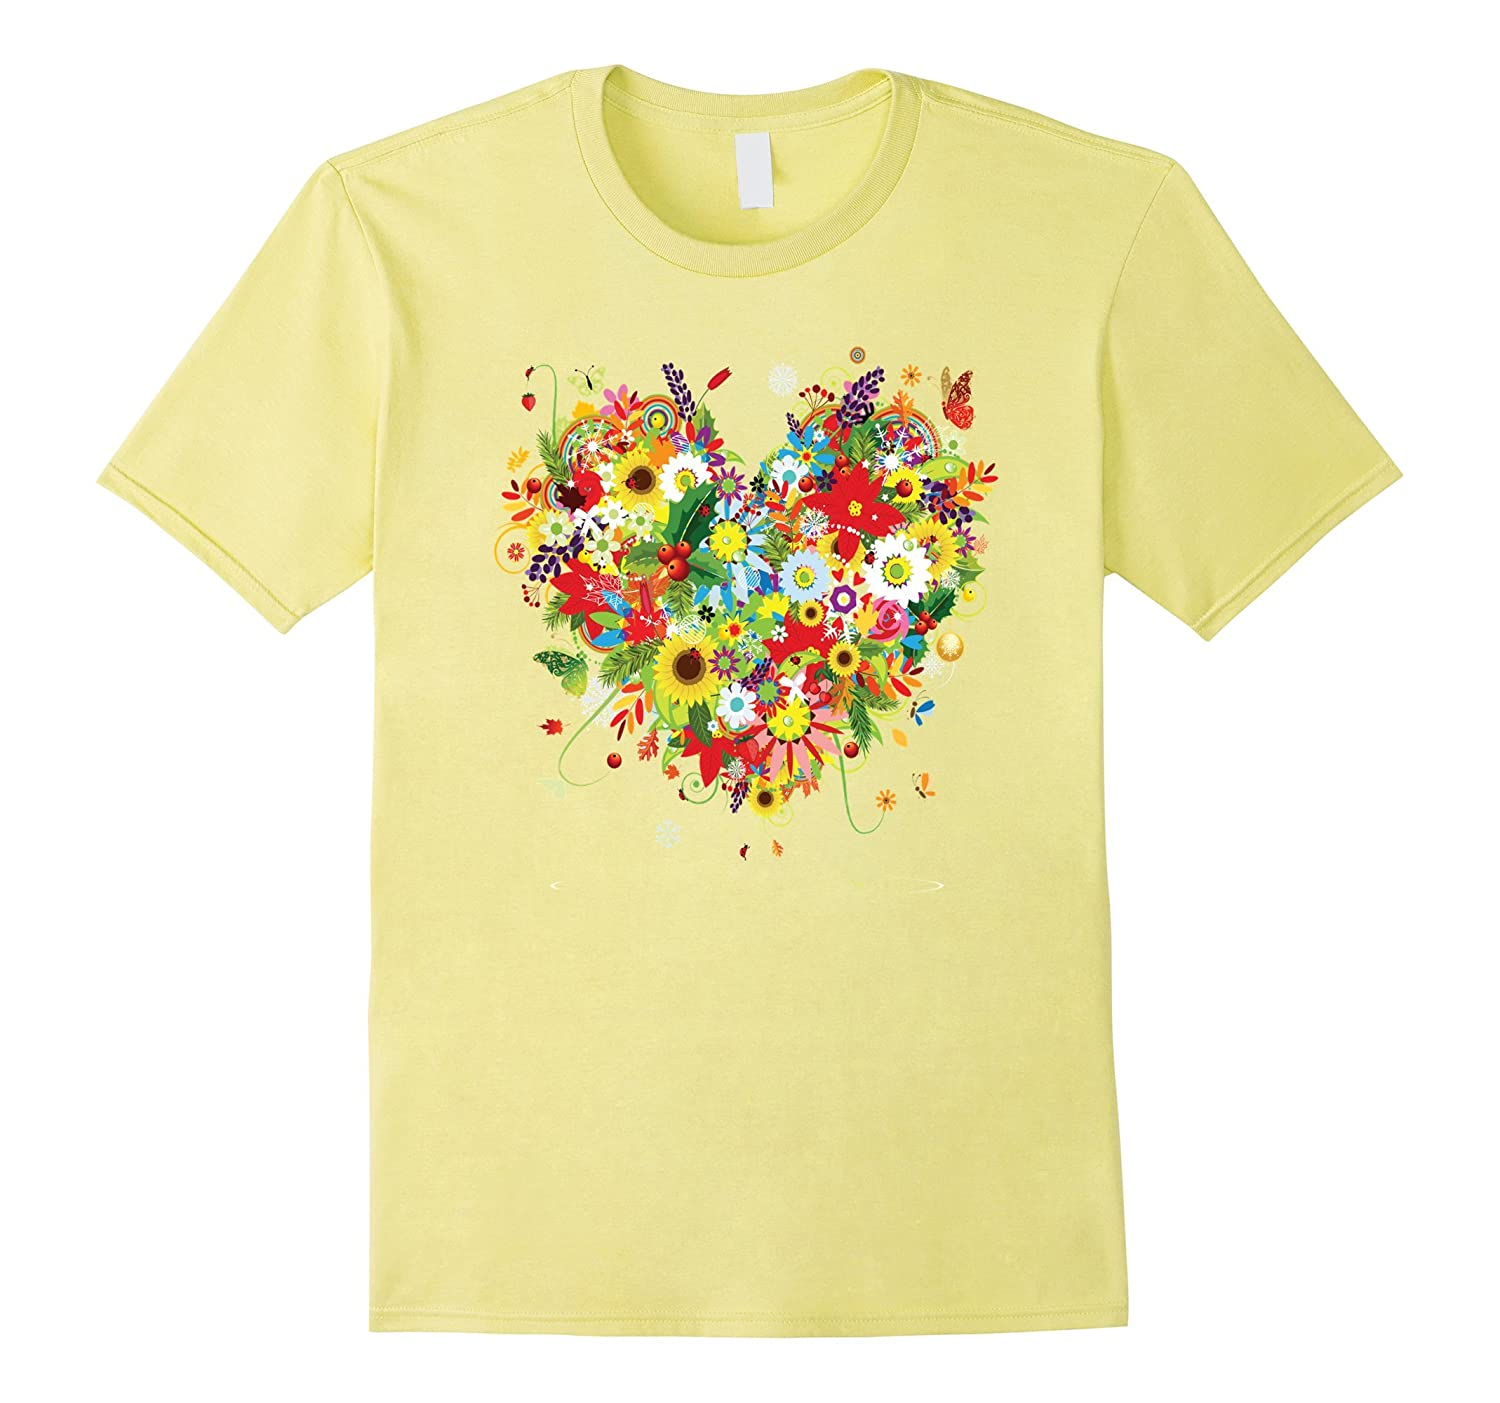 131a7506f Blooming Flowers Heart Daisy Sunflowers Roses Butterfly Tee-PL ...